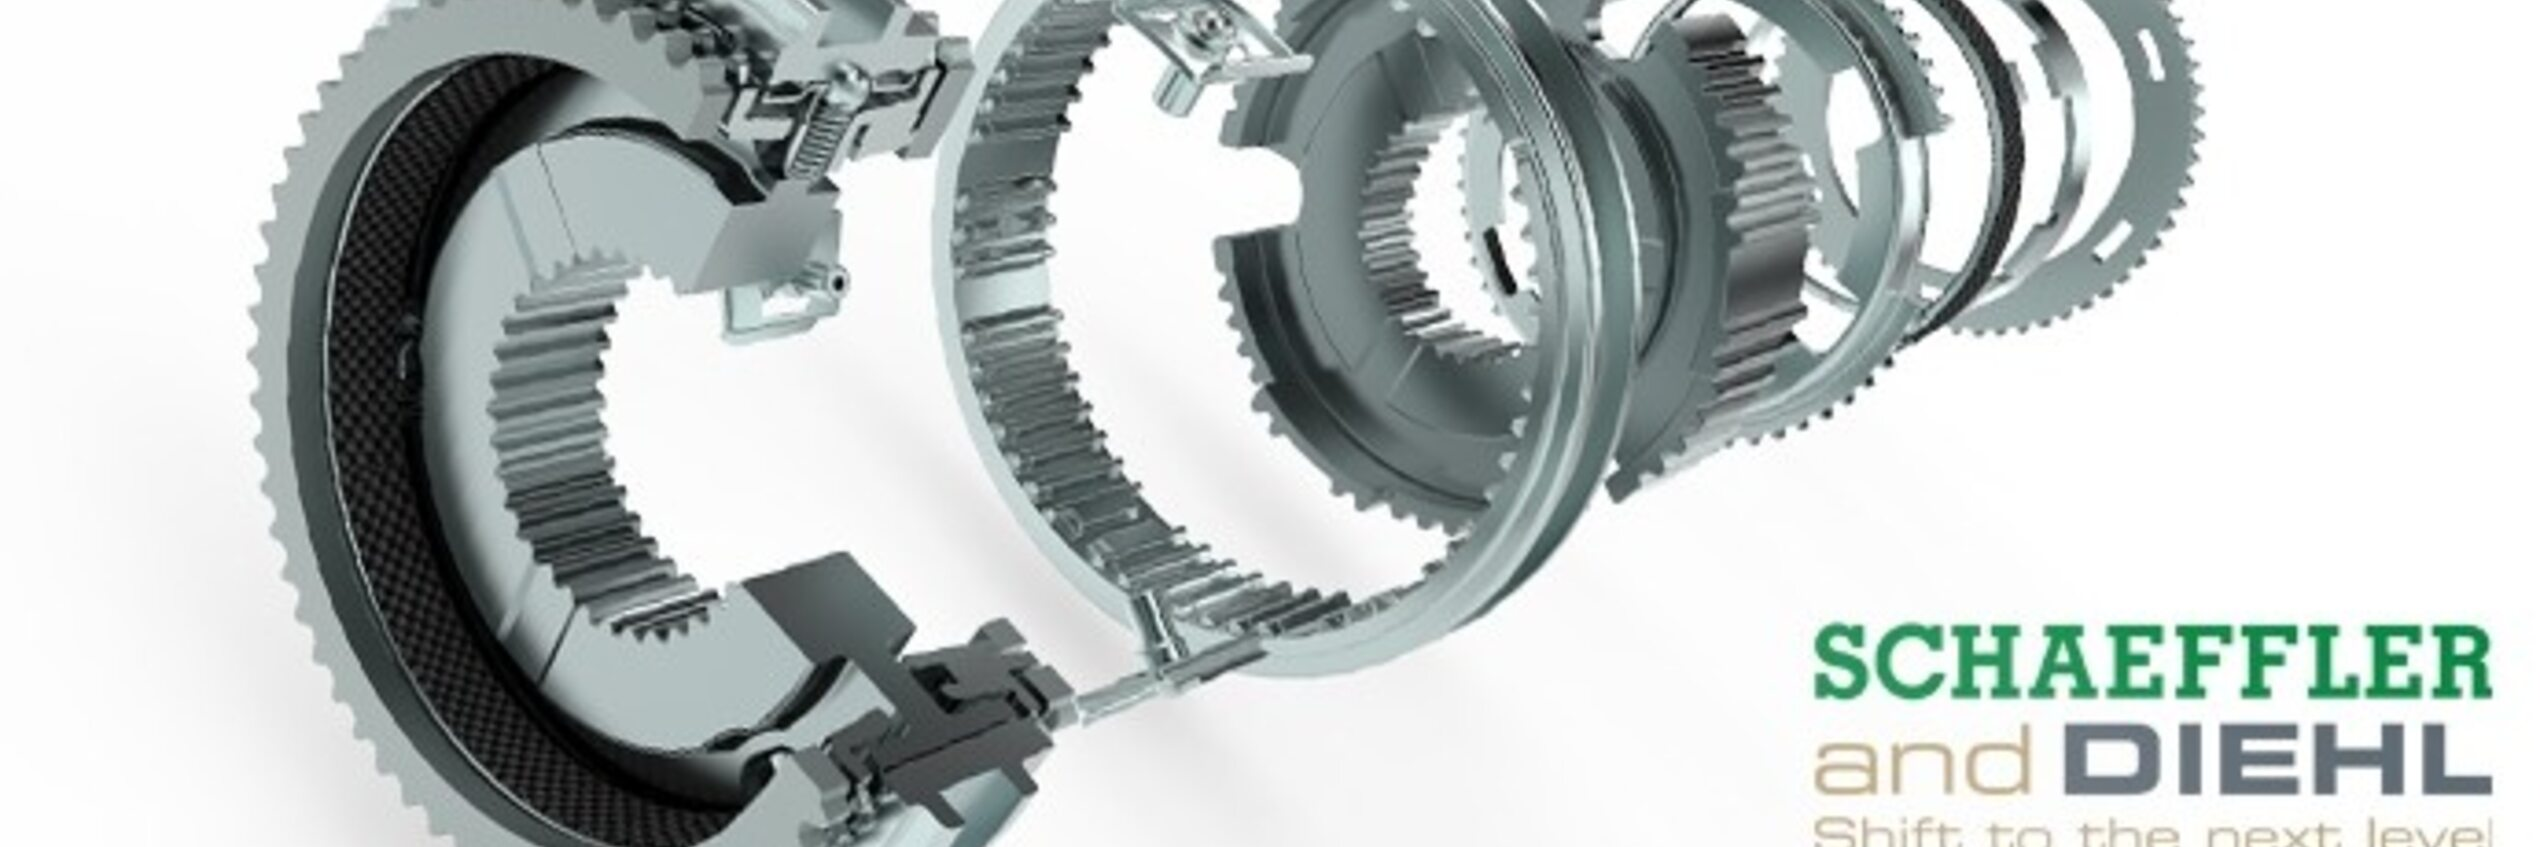 Schaeffler and Diehl Metall – shift to the next level